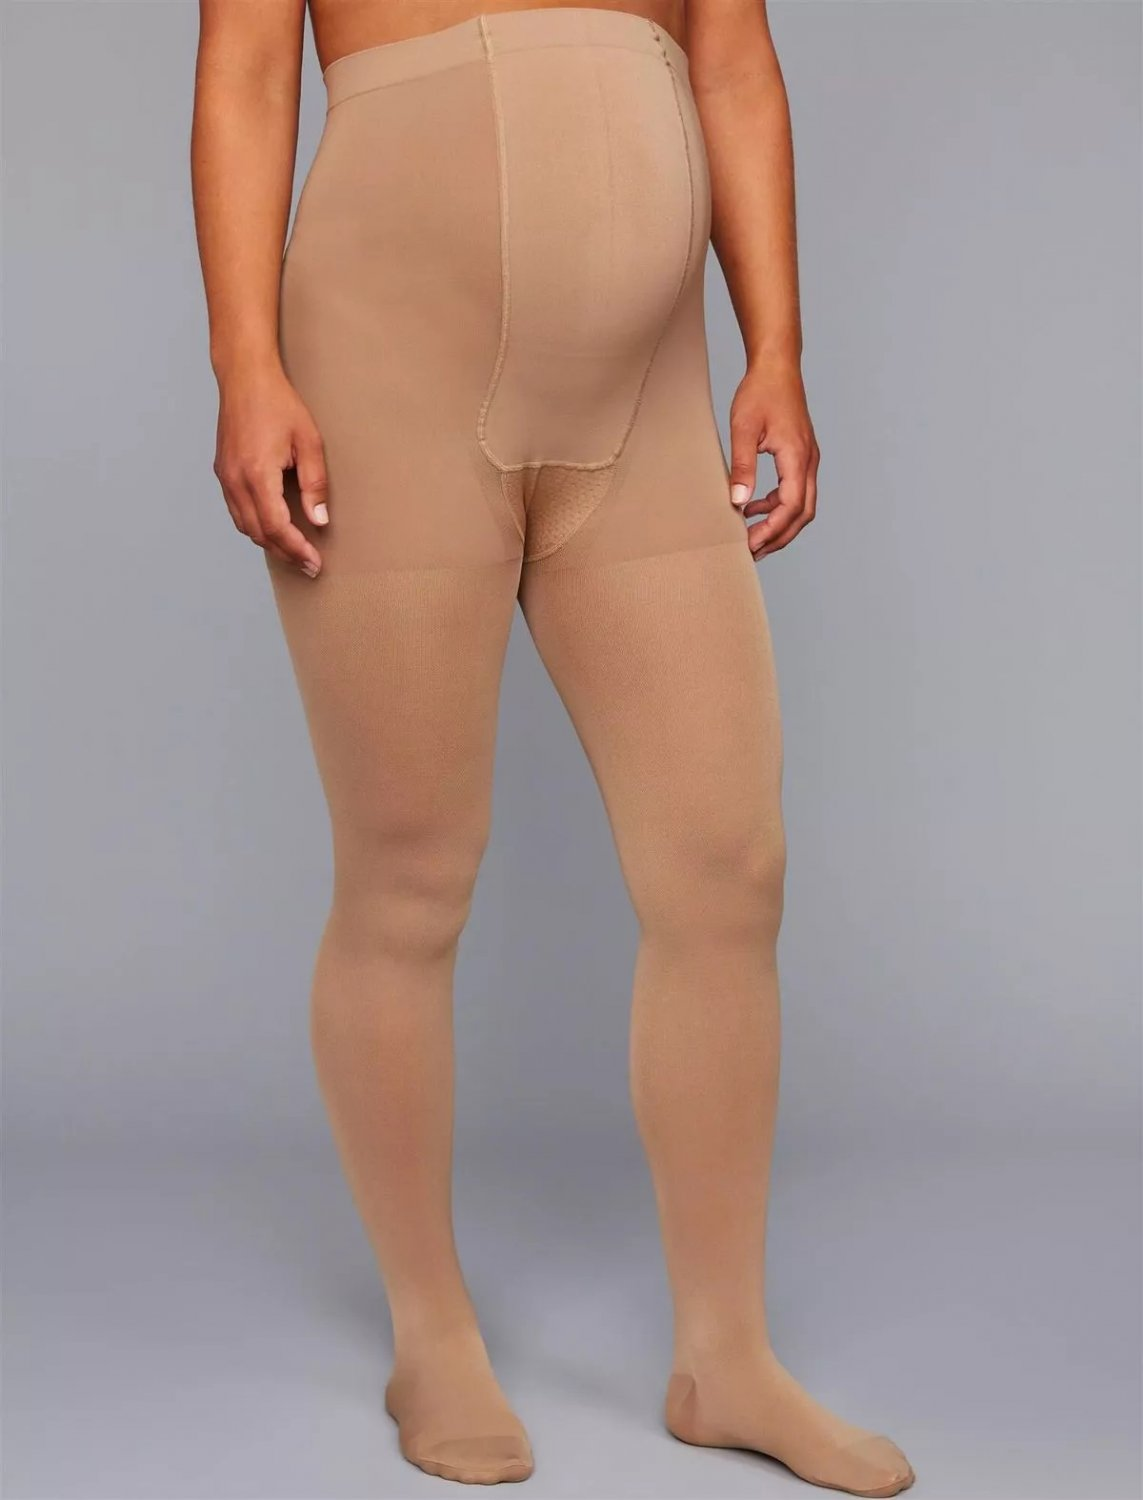 Insignia by Sigvaris Graduated Compression Maternity Tights - Size C - Nude!